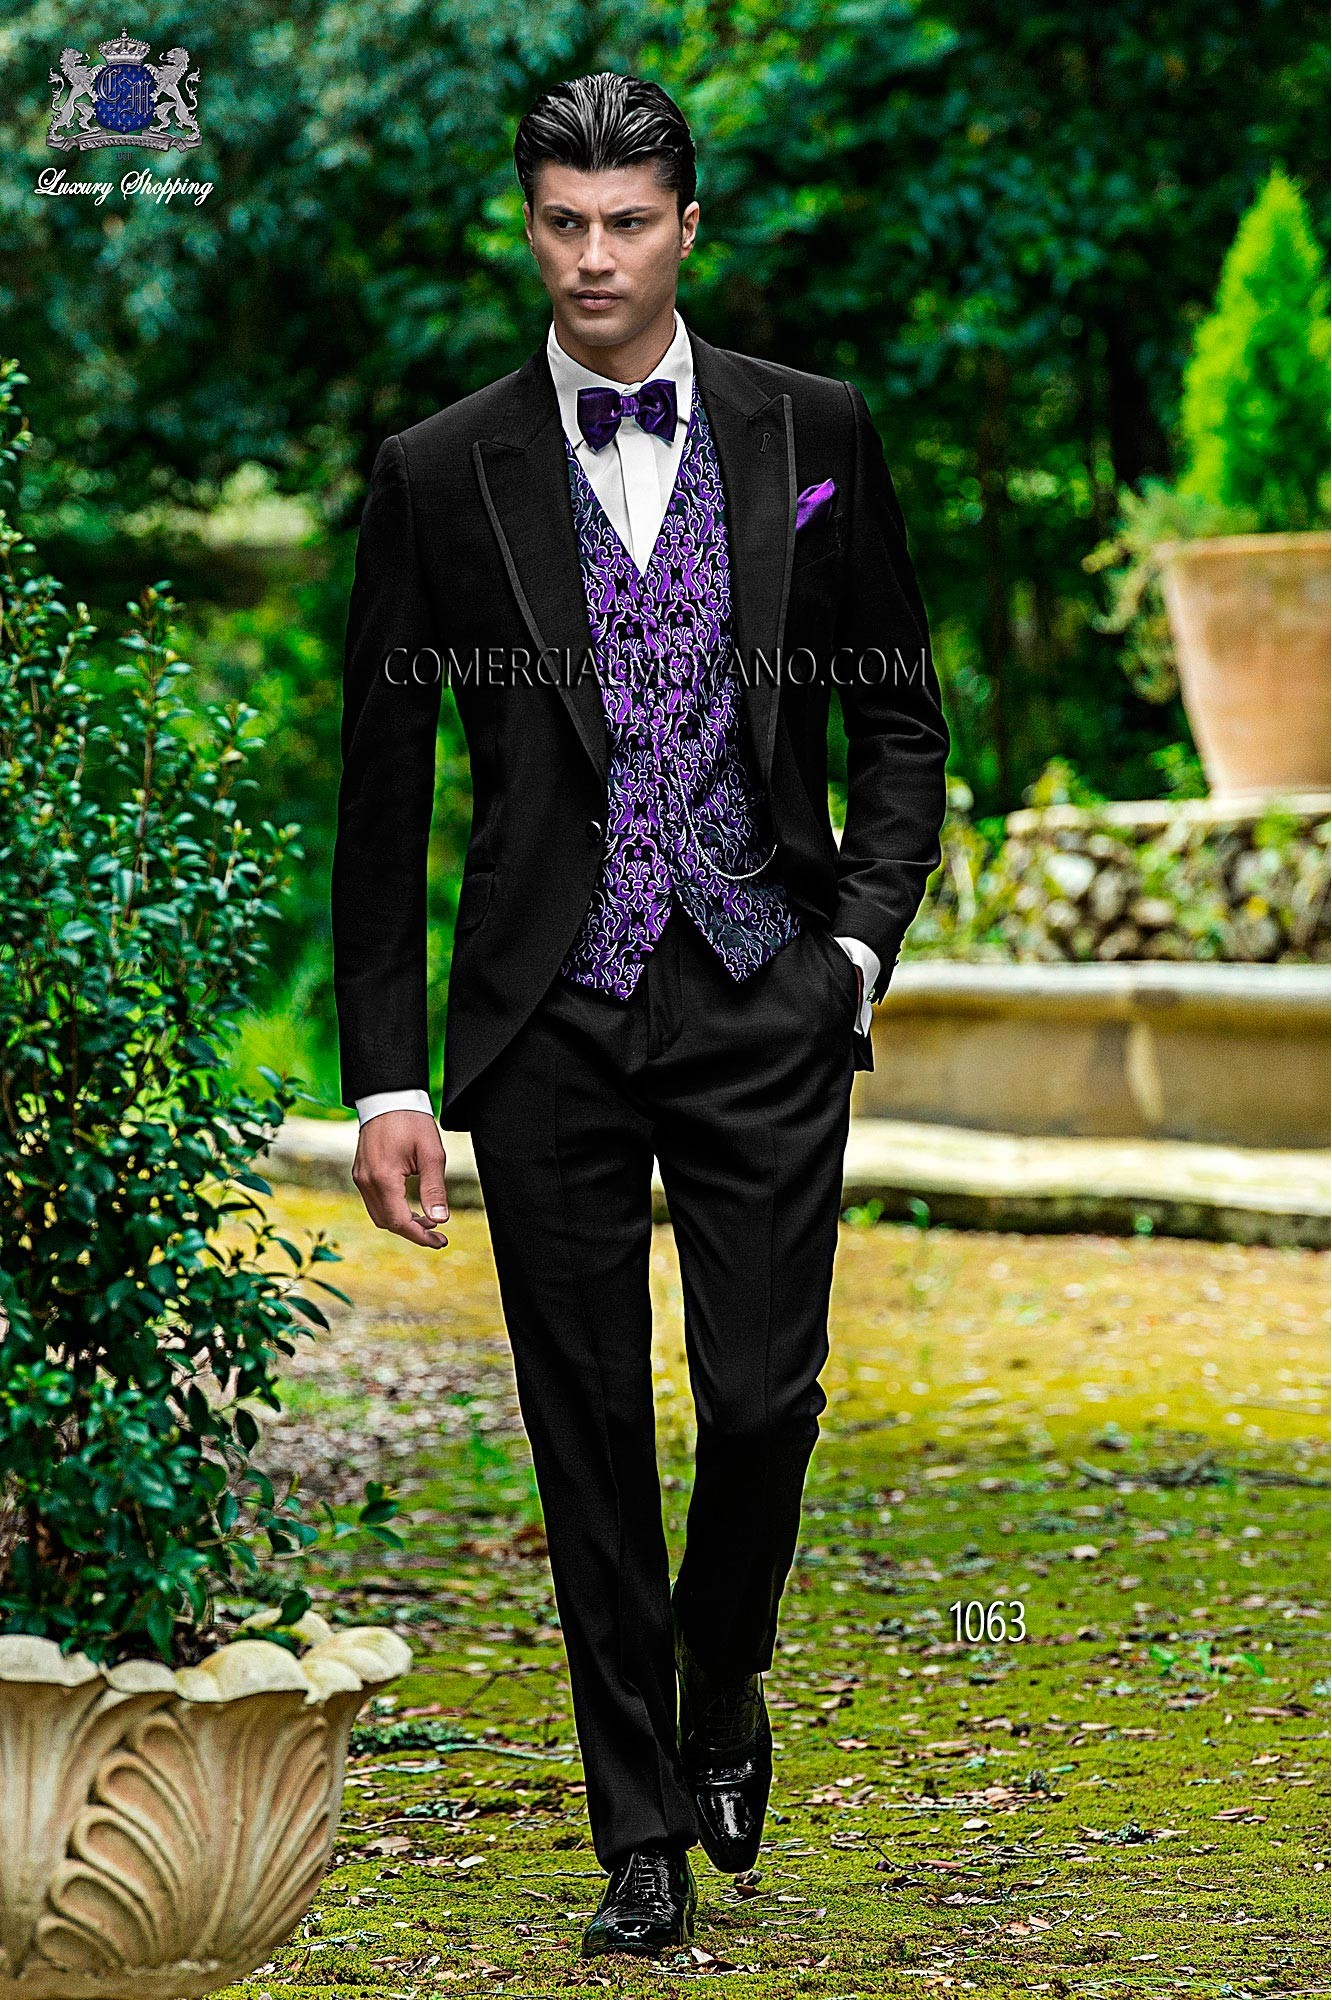 Fashion black men wedding suit model 1063 Ottavio Nuccio Gala